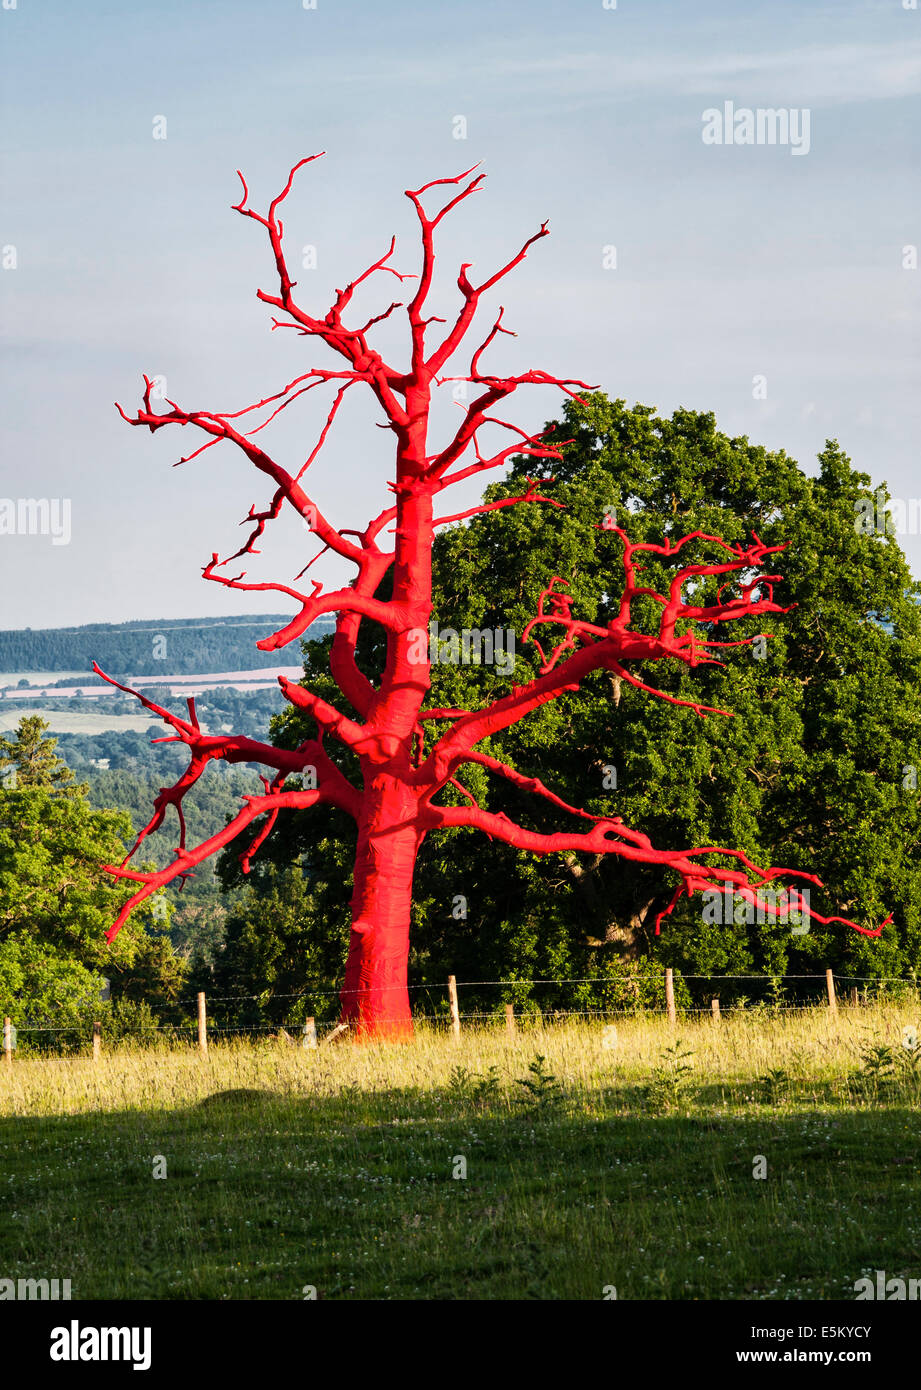 Red Tree, a temporary artwork at Croft Castle, Herefordshire, UK, by the artist Philippa Lawrence - Stock Image